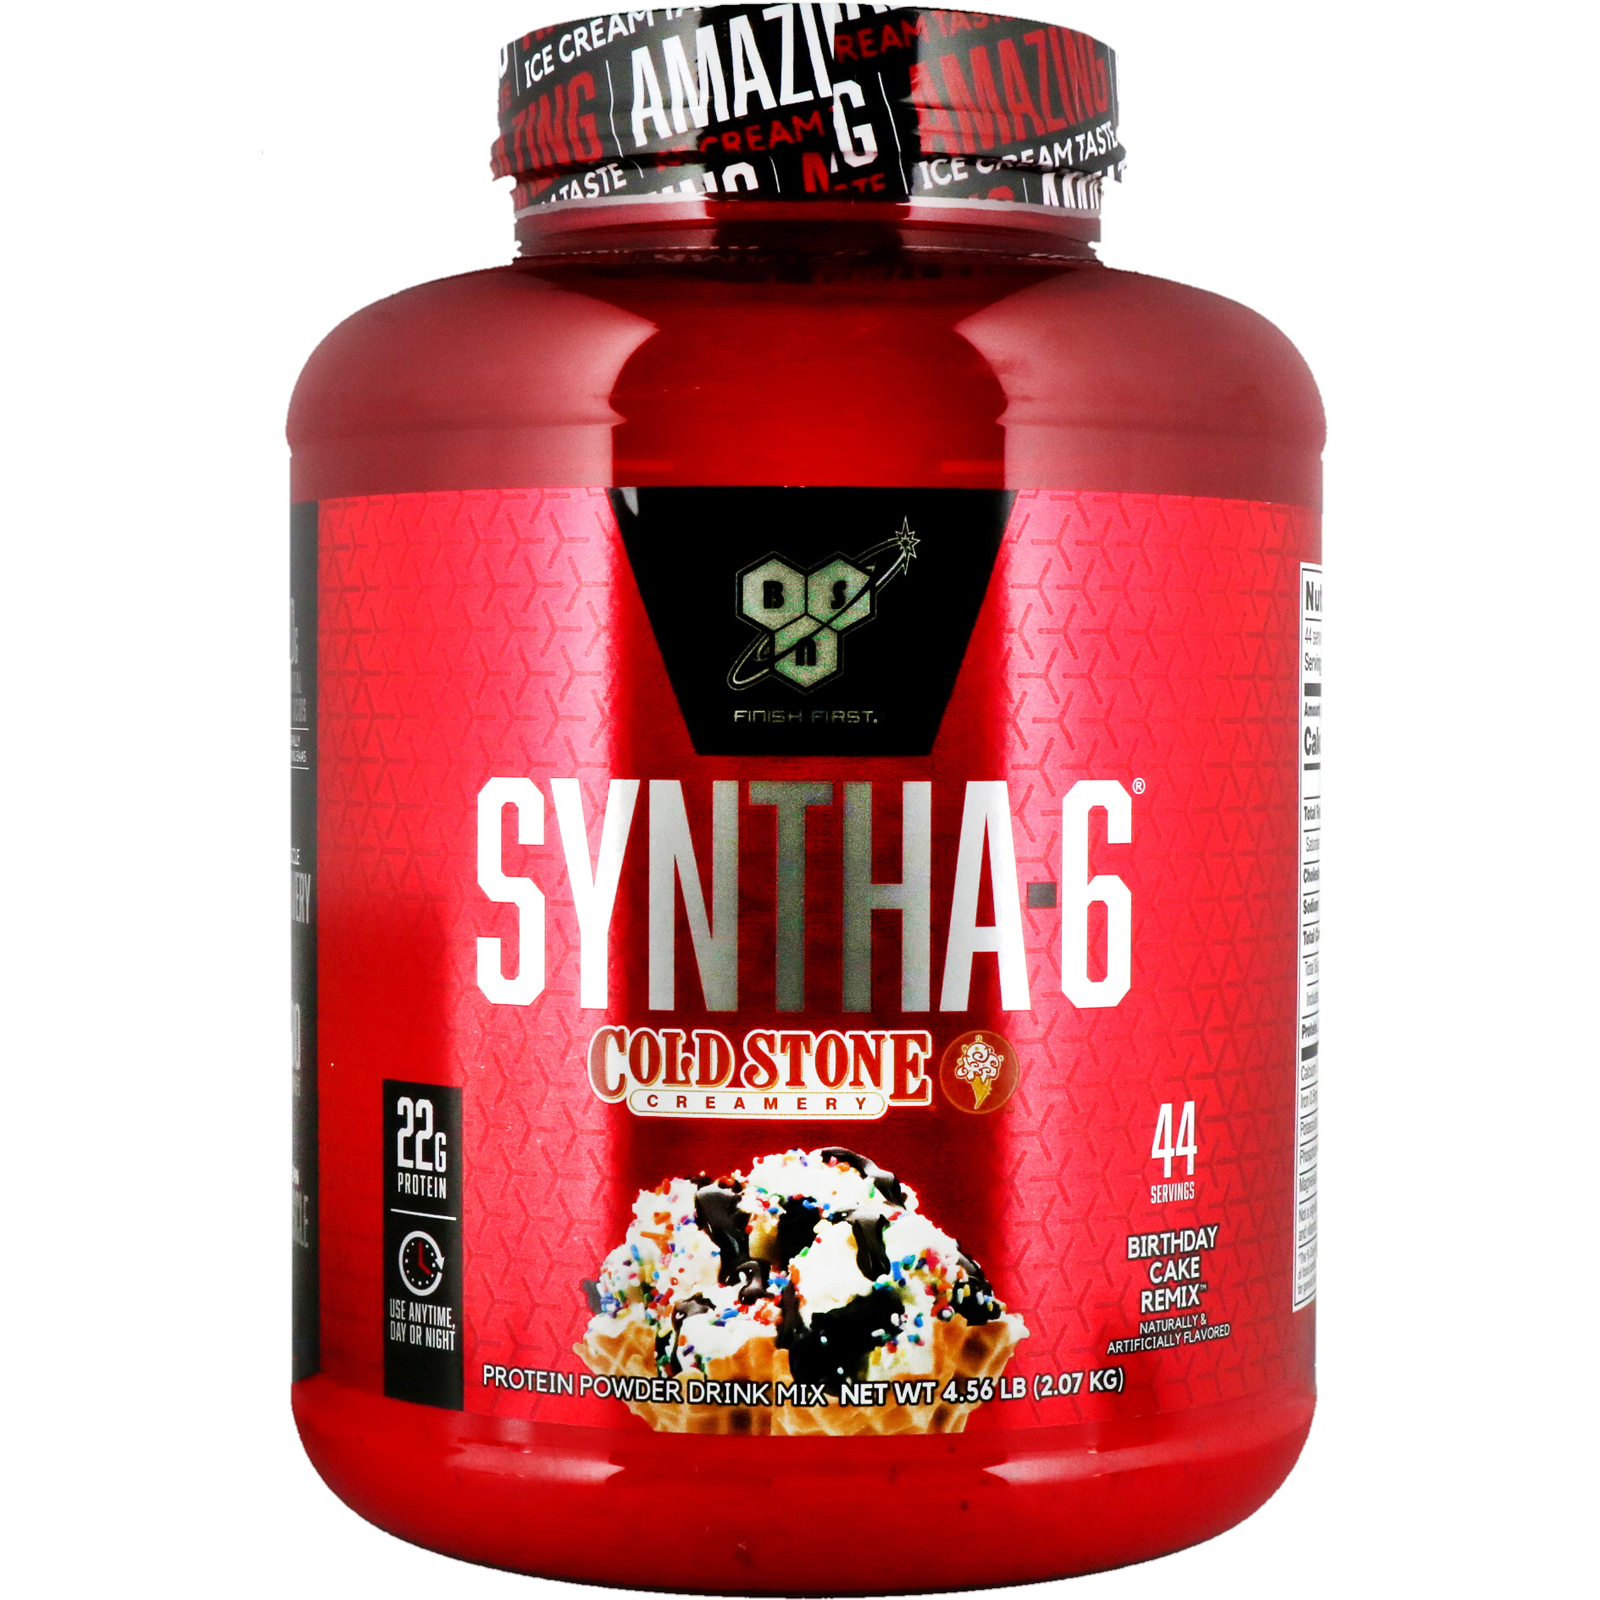 Bsn Syntha 6 Cold Stone Creamery Birthday Cake Remix 456 Lb